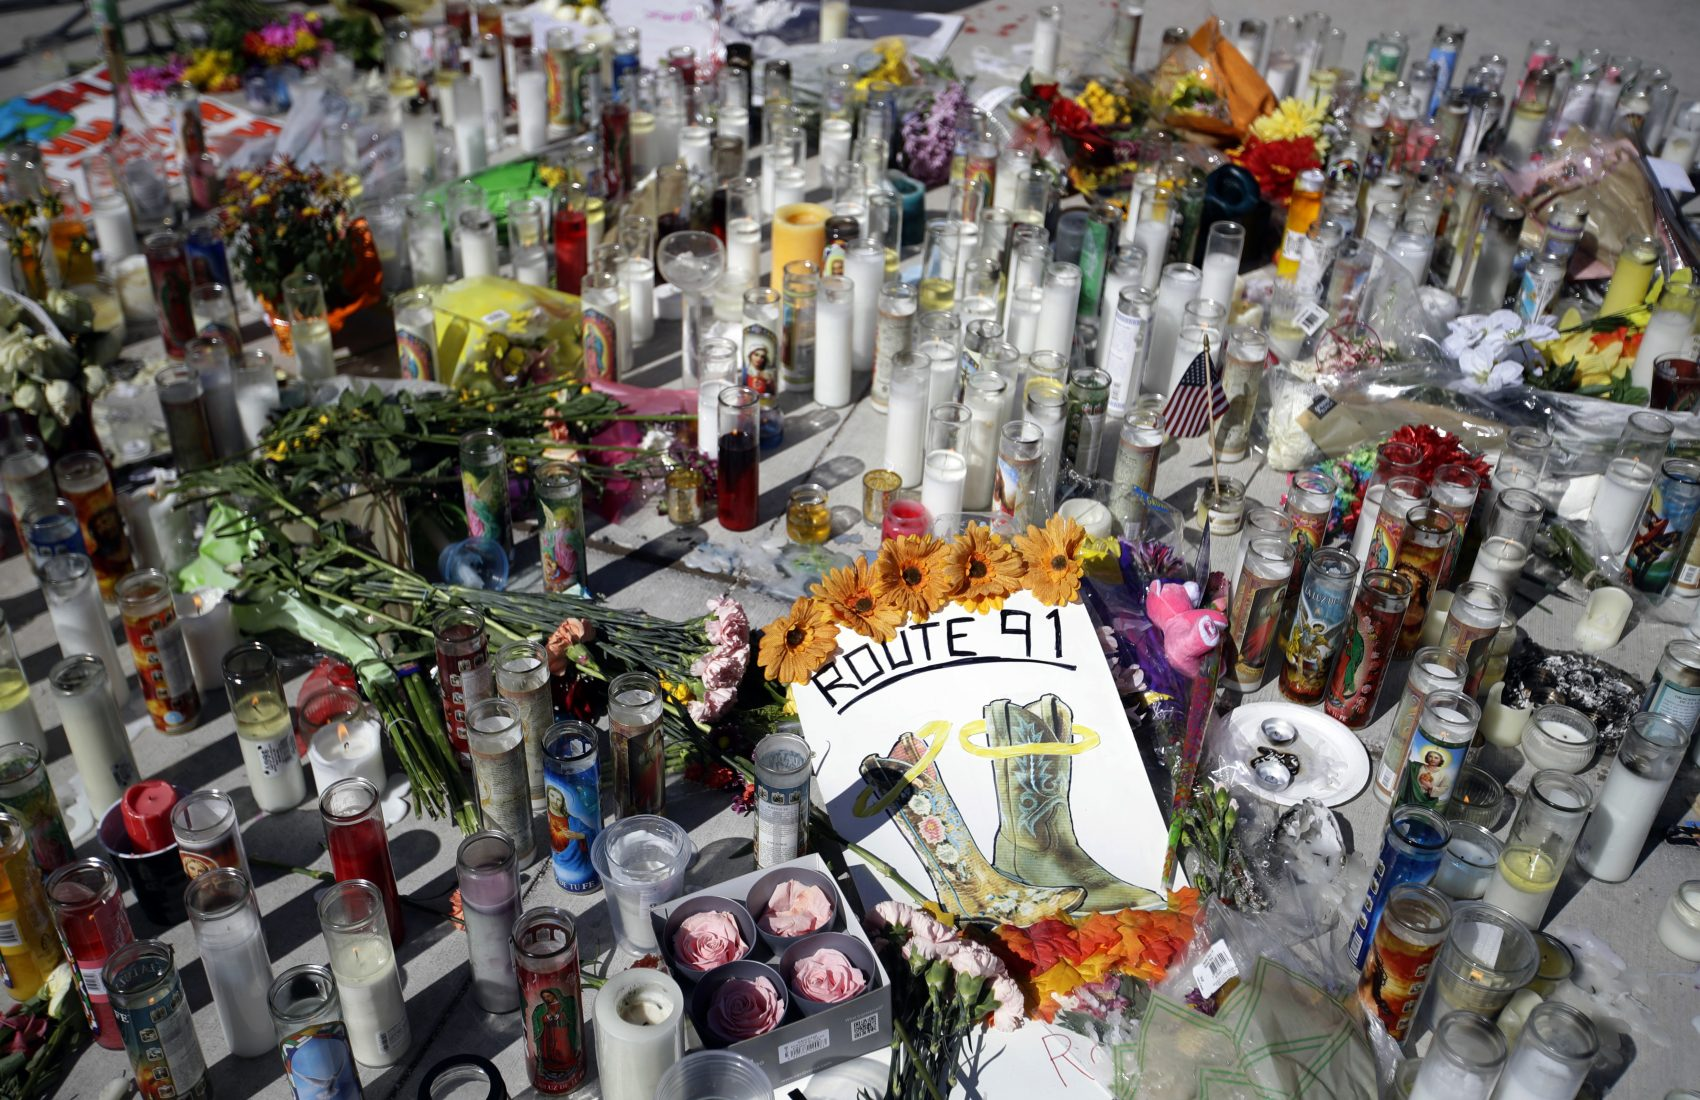 Flowers and candles are left at a makeshift memorial site on Las Vegas Boulevard on Tuesday, Oct. 3, 2017, in Las Vegas. A gunman opened fire on an outdoor music concert on Sunday killing dozens and injuring hundreds. (Chris Carlson/AP)